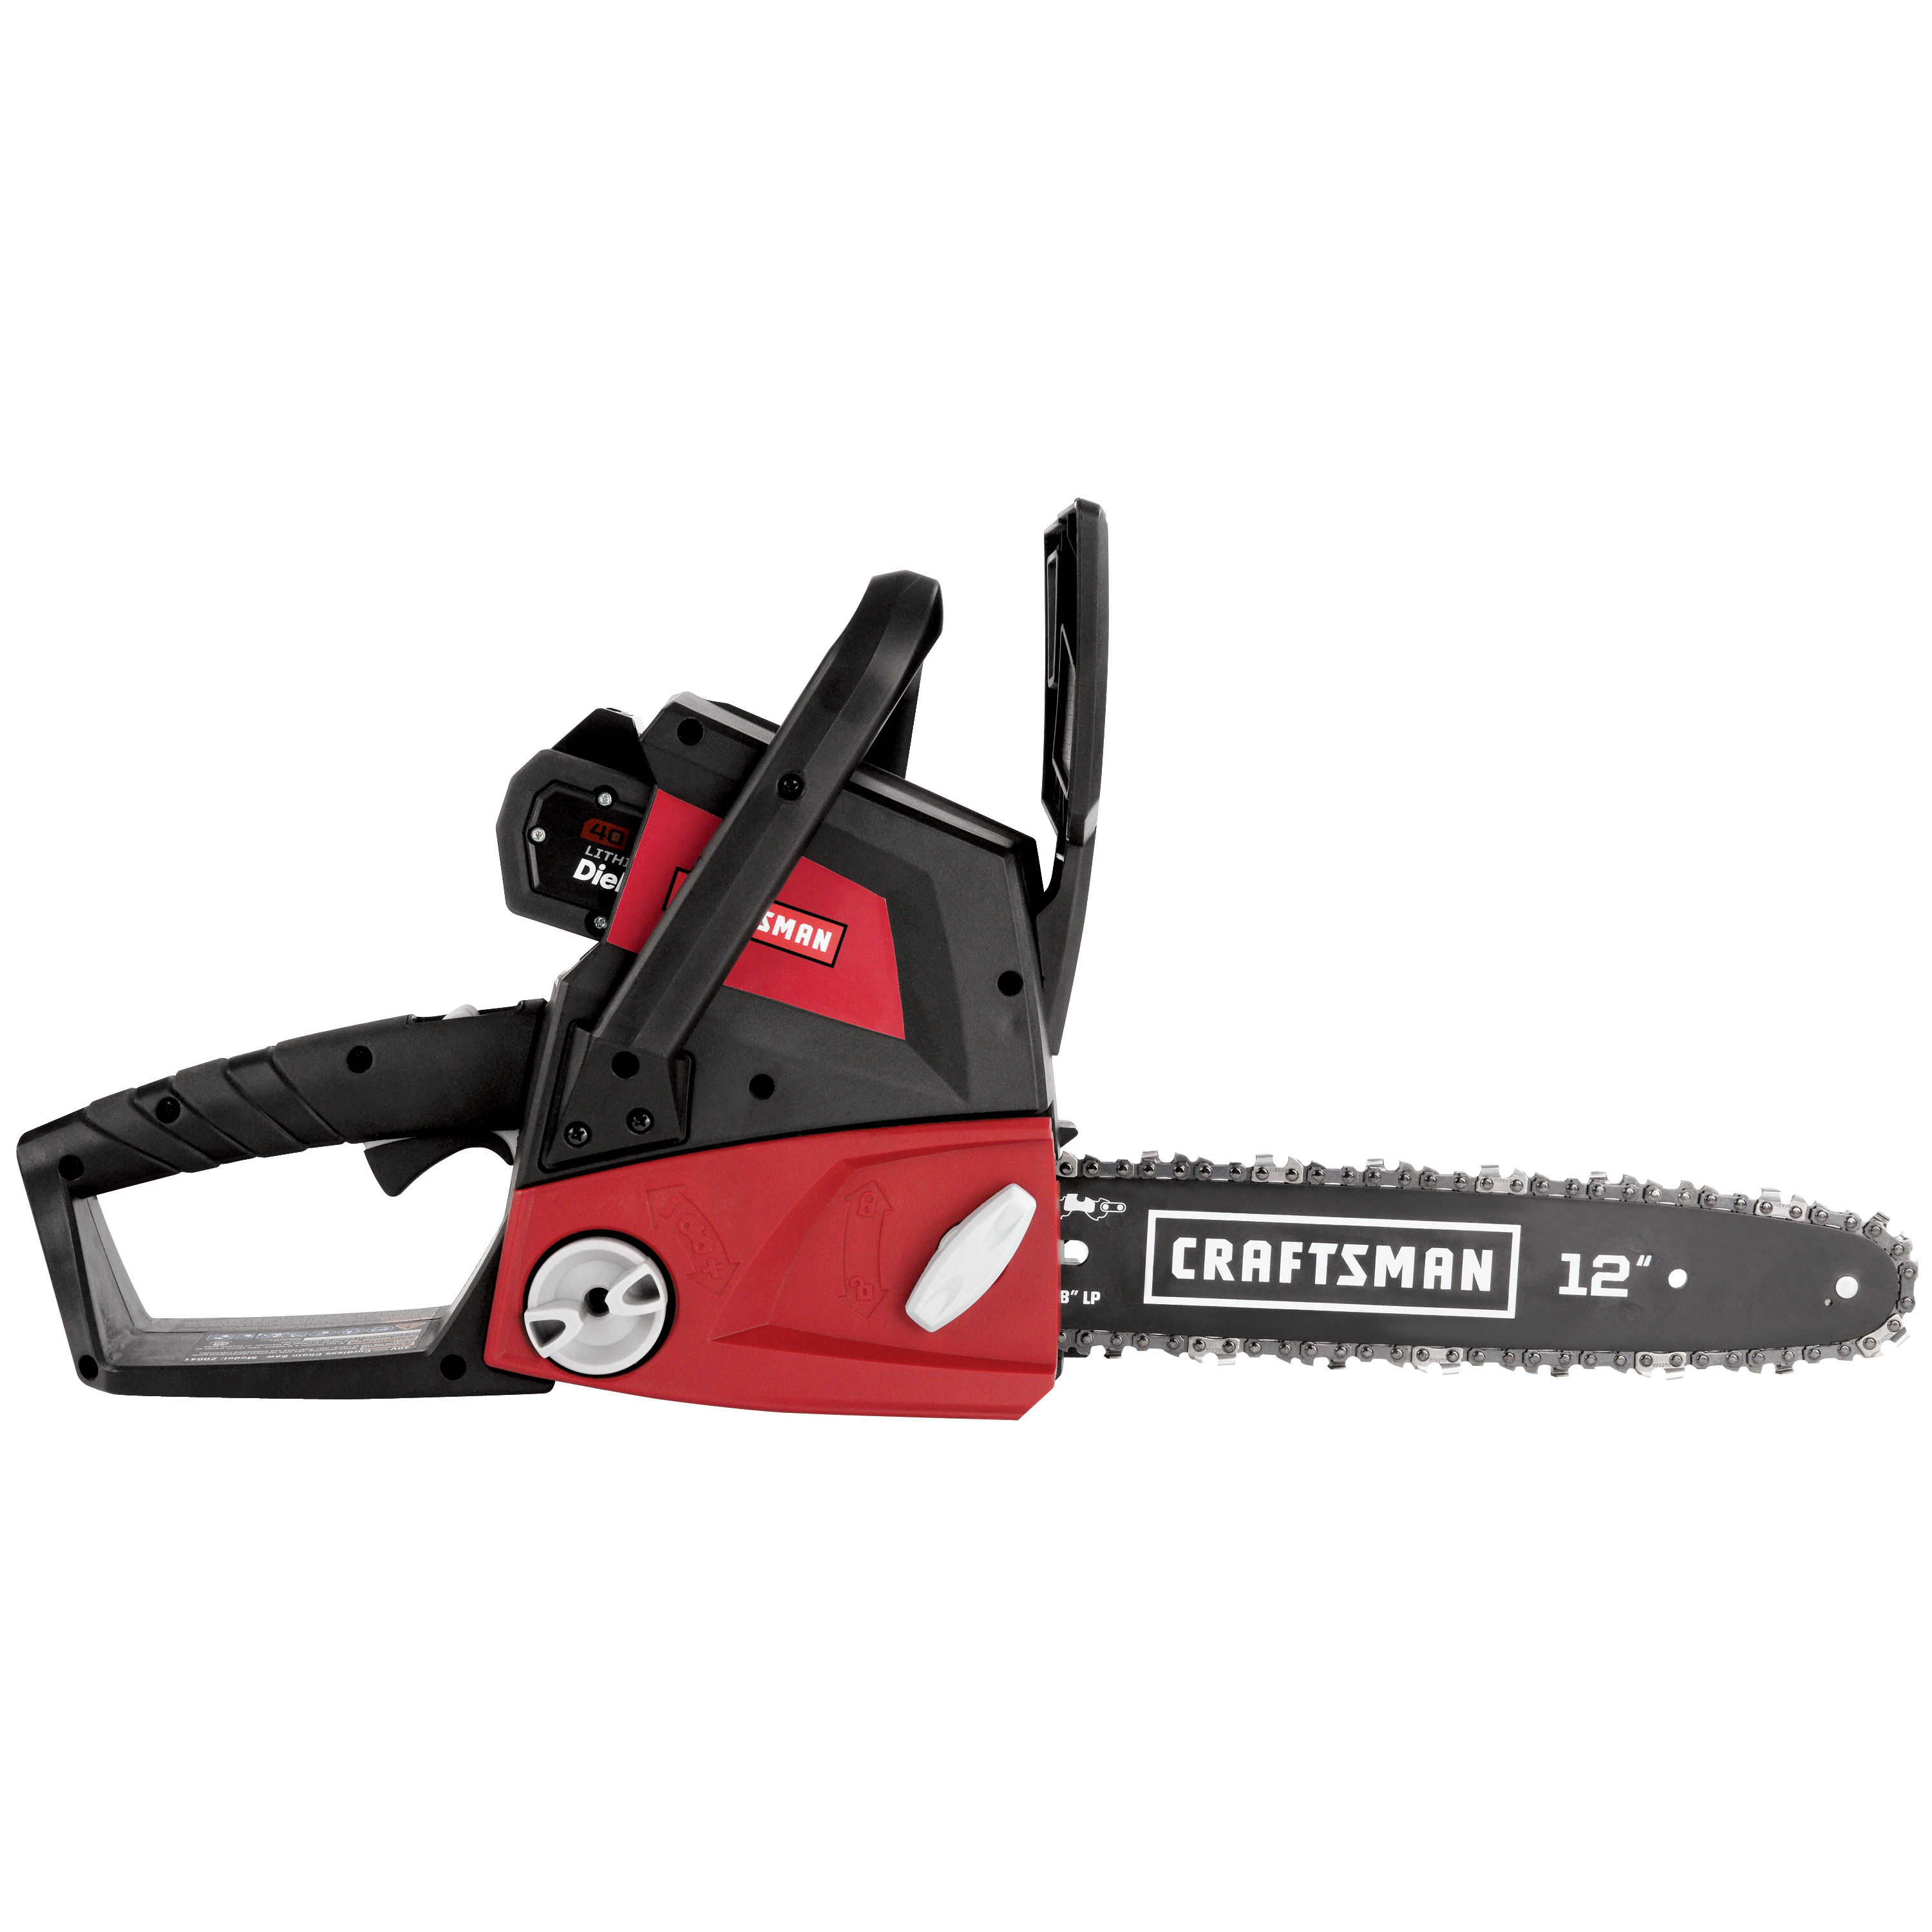 Craftsman 40V 12-in. Cordless Chainsaw (Non CA)